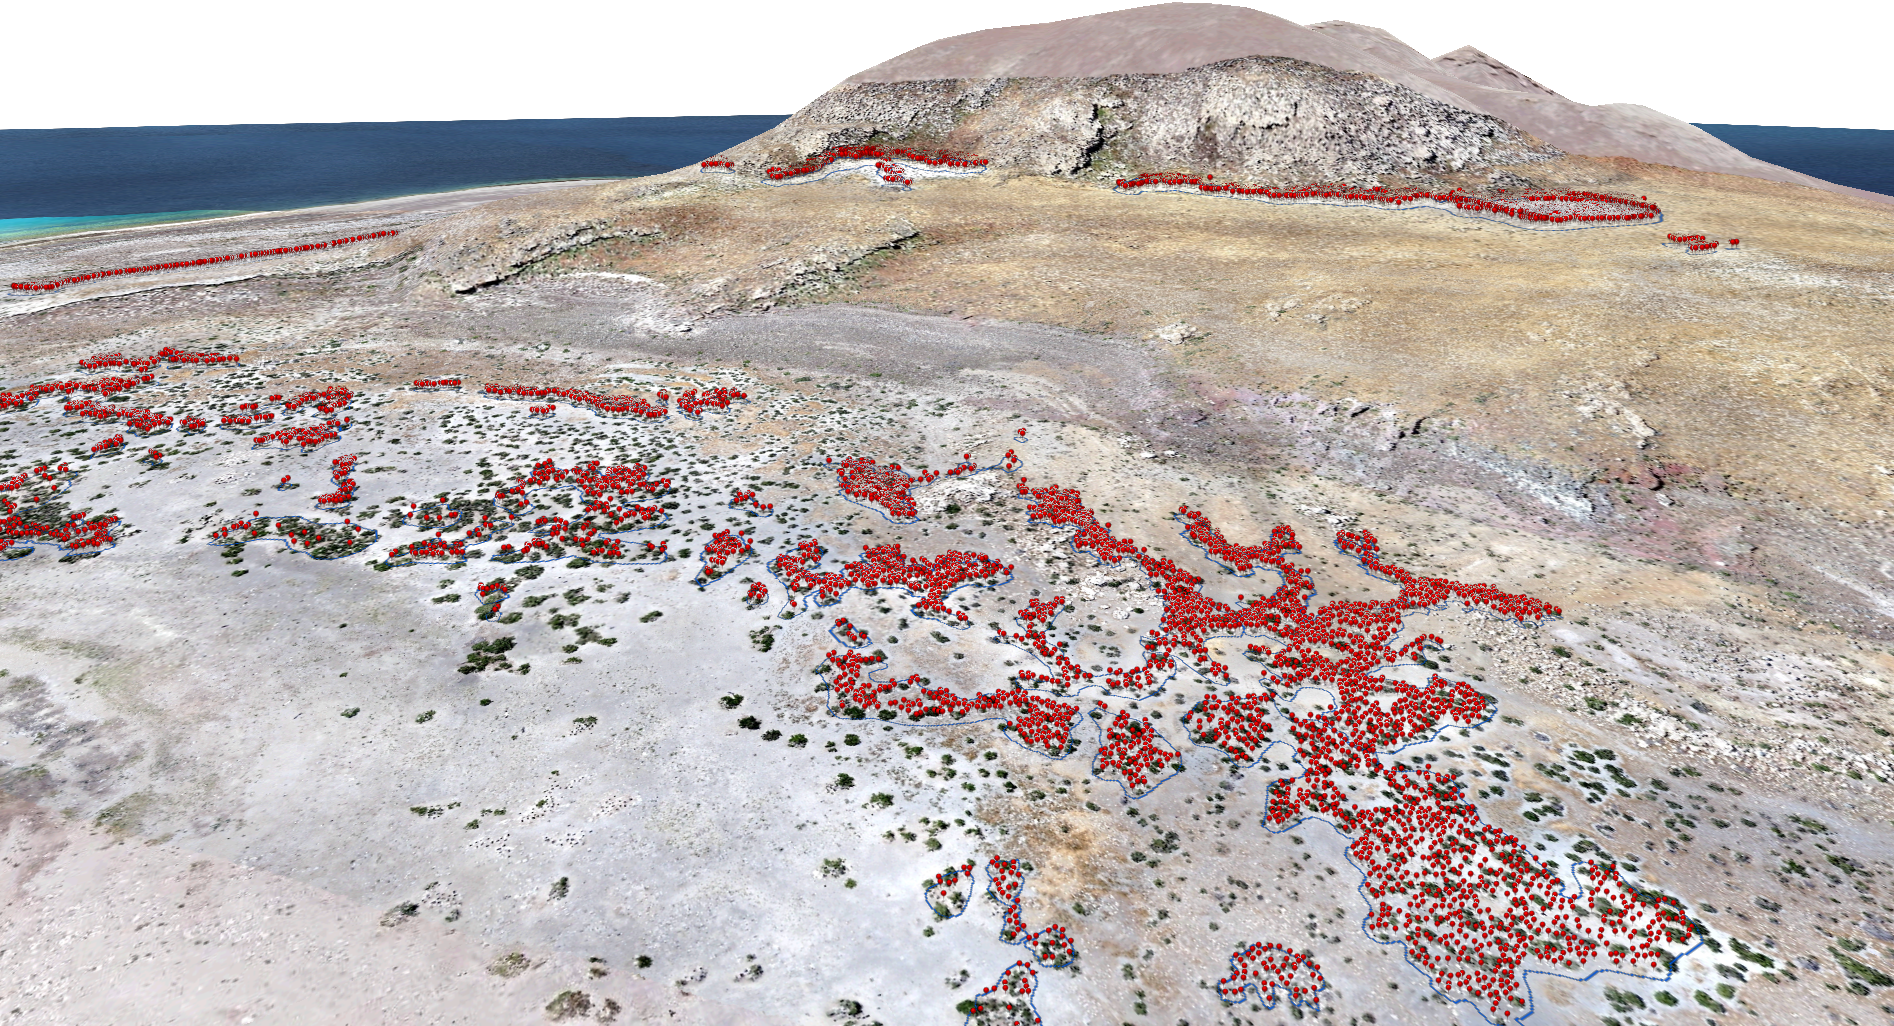 Natural color imagery collected via the RQ-11A Raven UAS platform. Three-dimensional models created from the individual images captured by the UAS. Red pins mark individual American pelicans on the island.